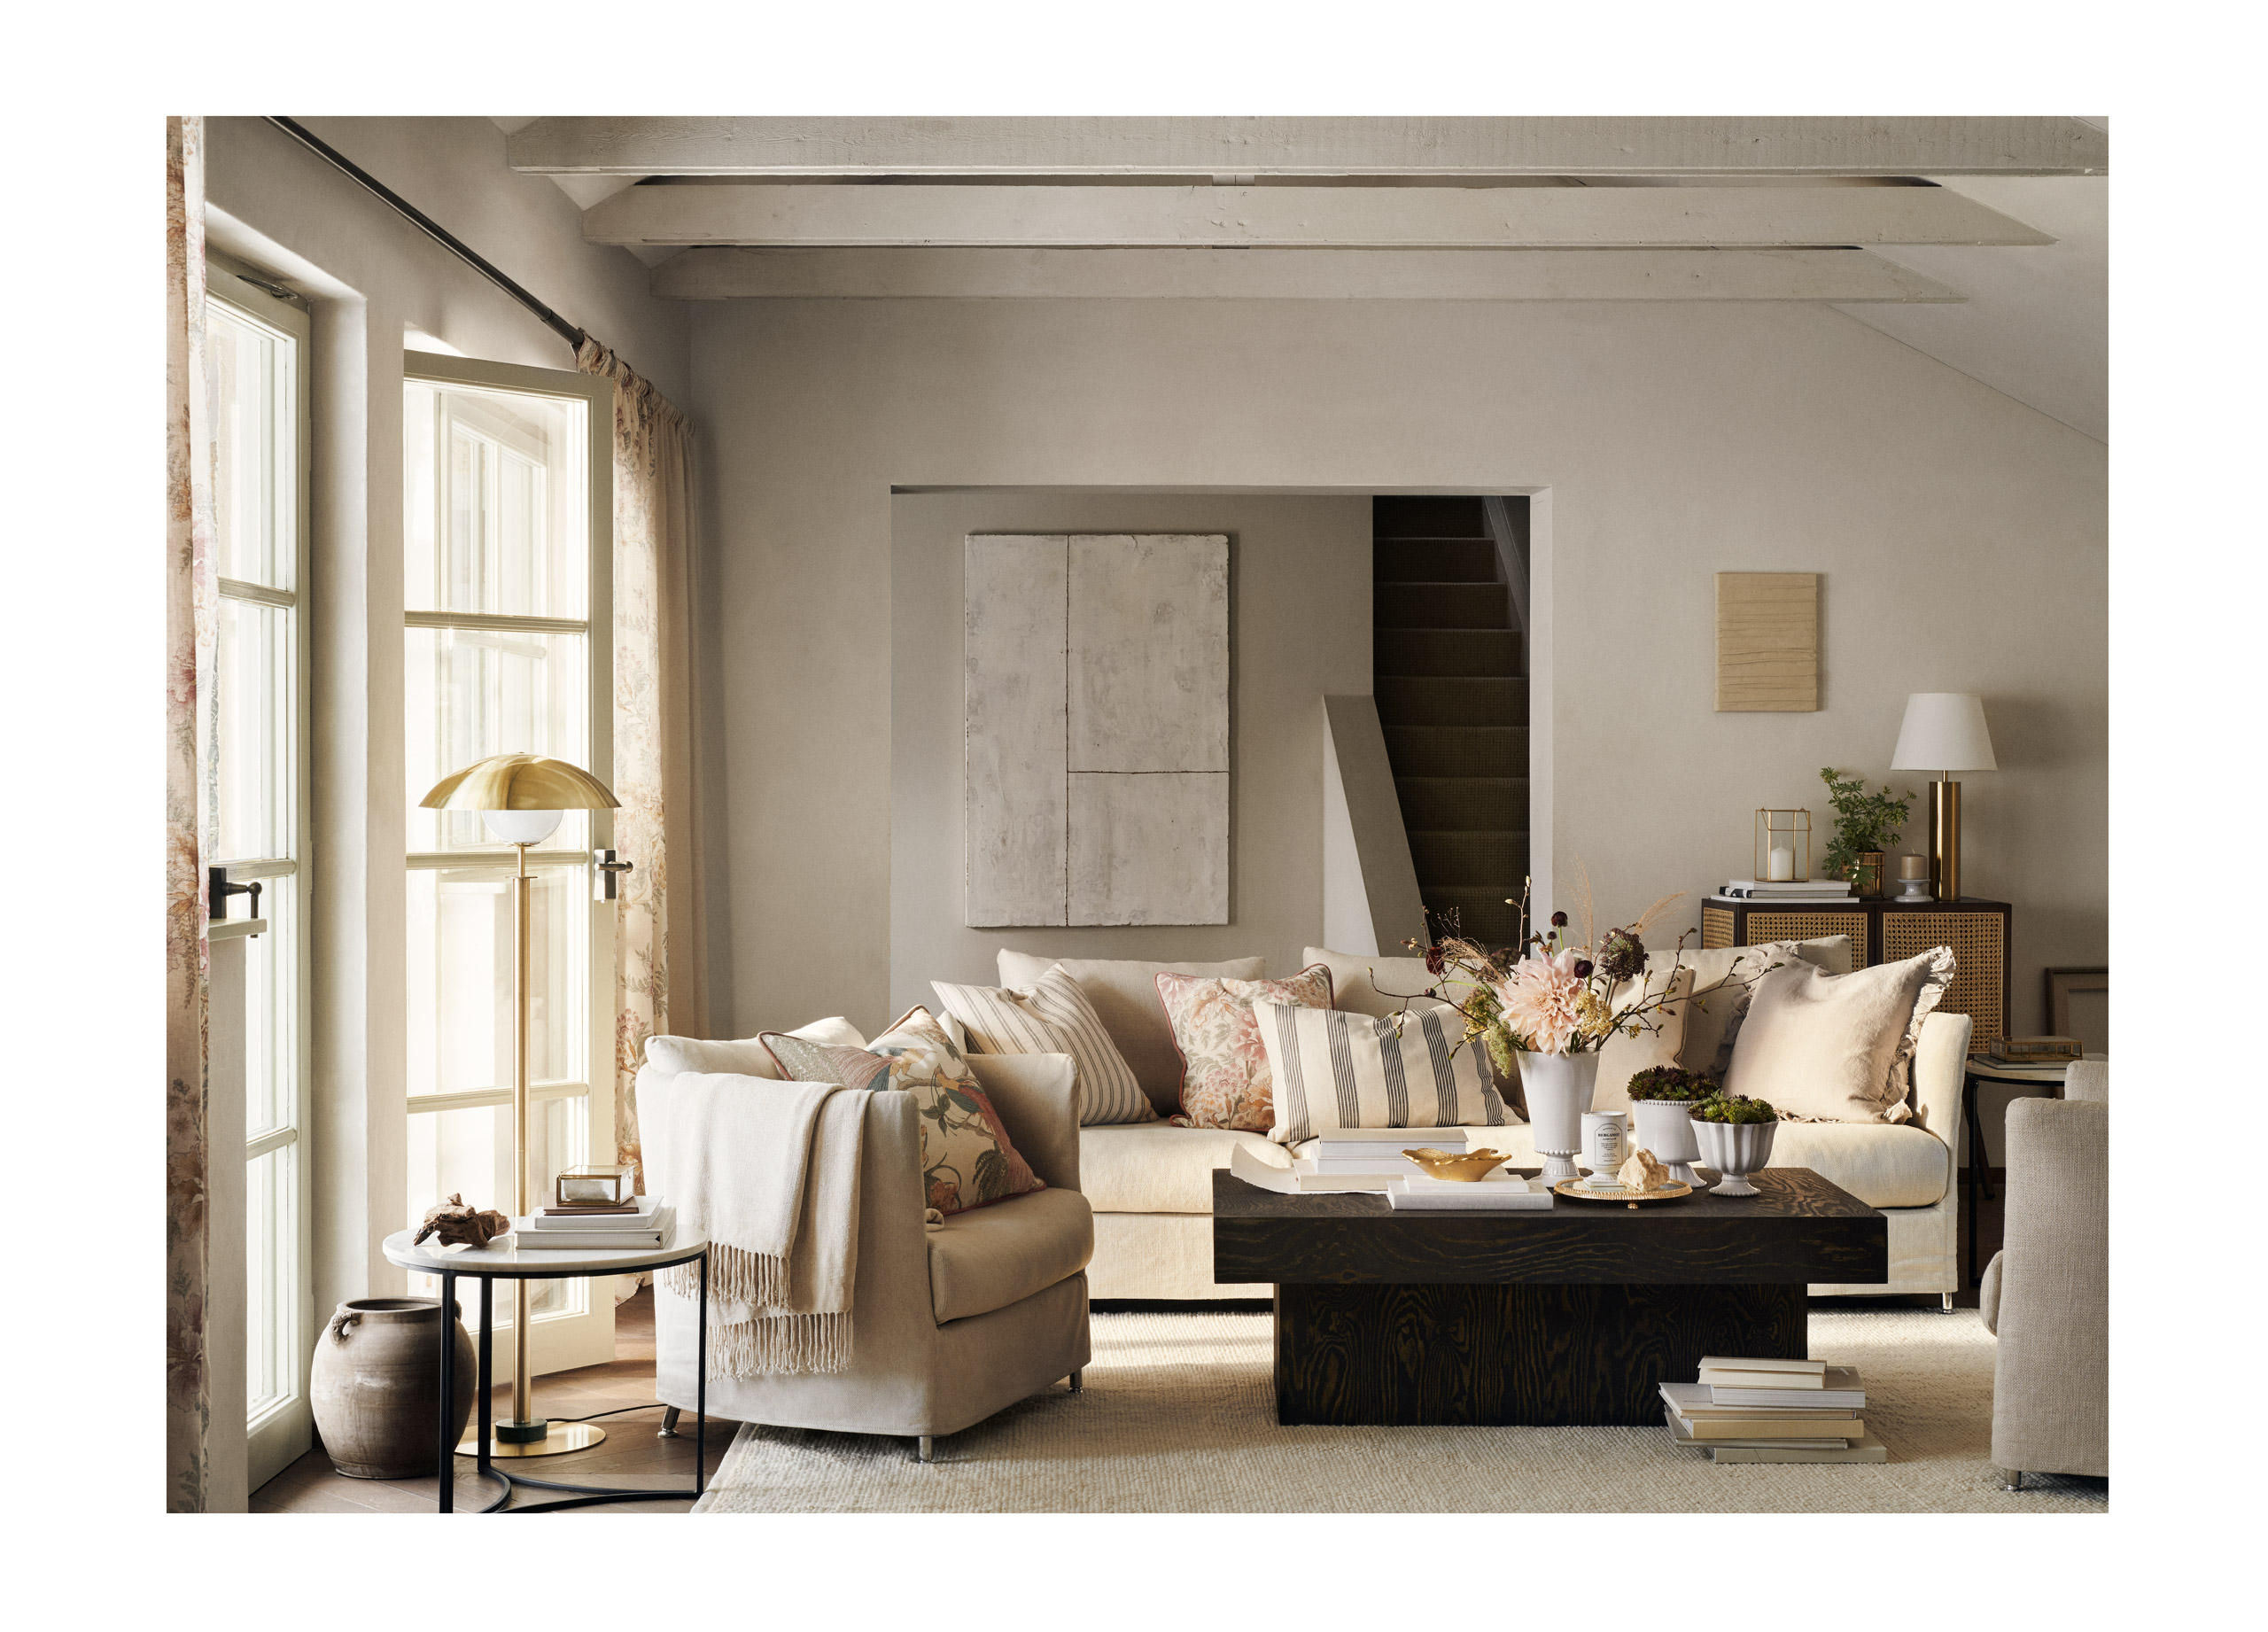 "<p><span style=""font-size: 12px;"">photographer</span> <span style=""font-weight: bold;"">Kristofer Johnsson</span></p><p><span style=""font-weight: bold;"">H&M Home</span></p>"